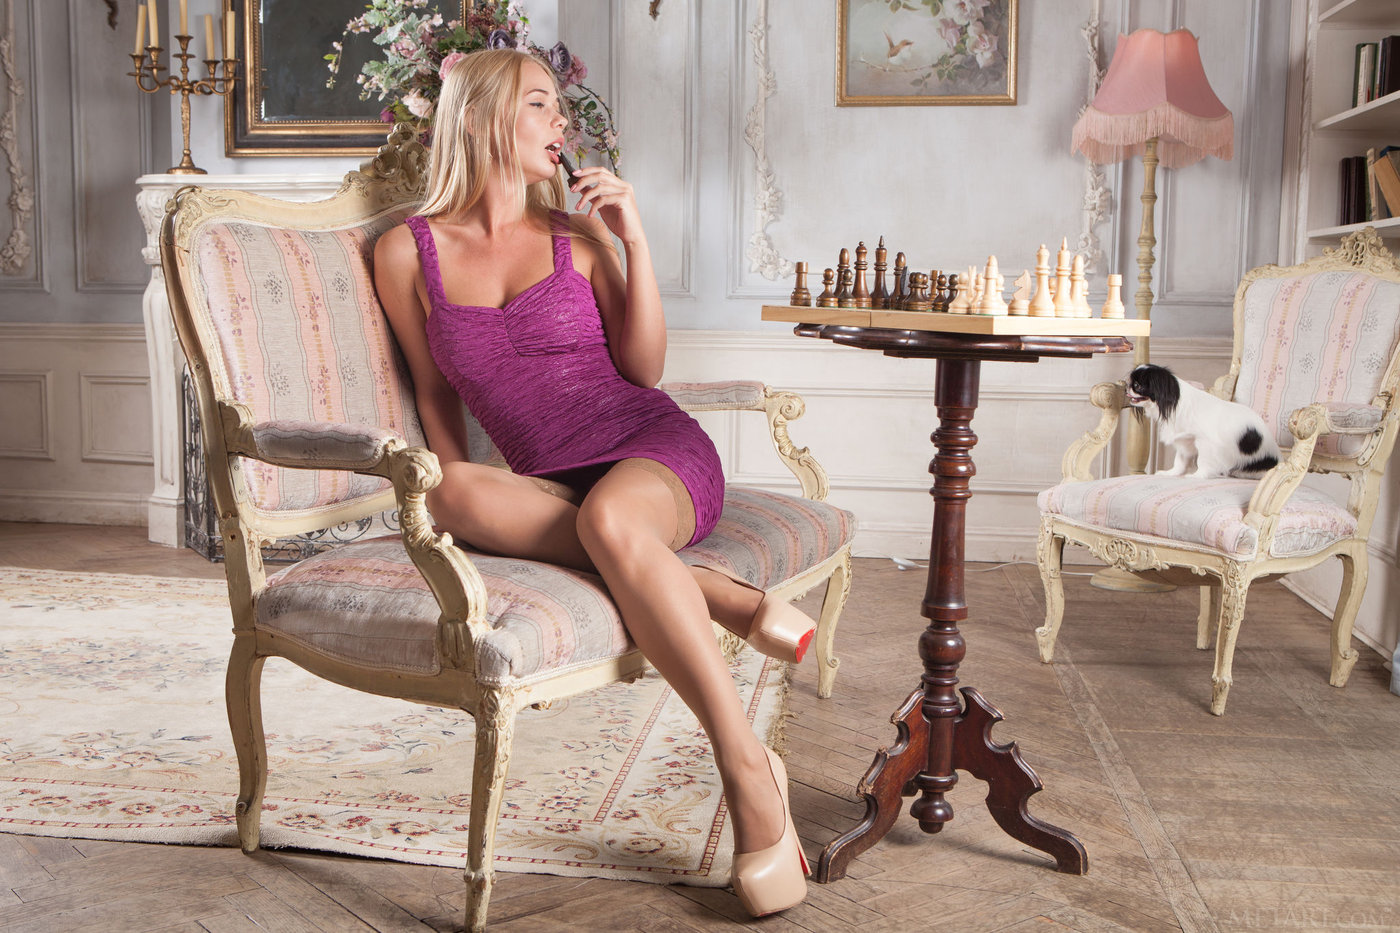 Blond-haired chick gets really bored with chess and starts getting naked